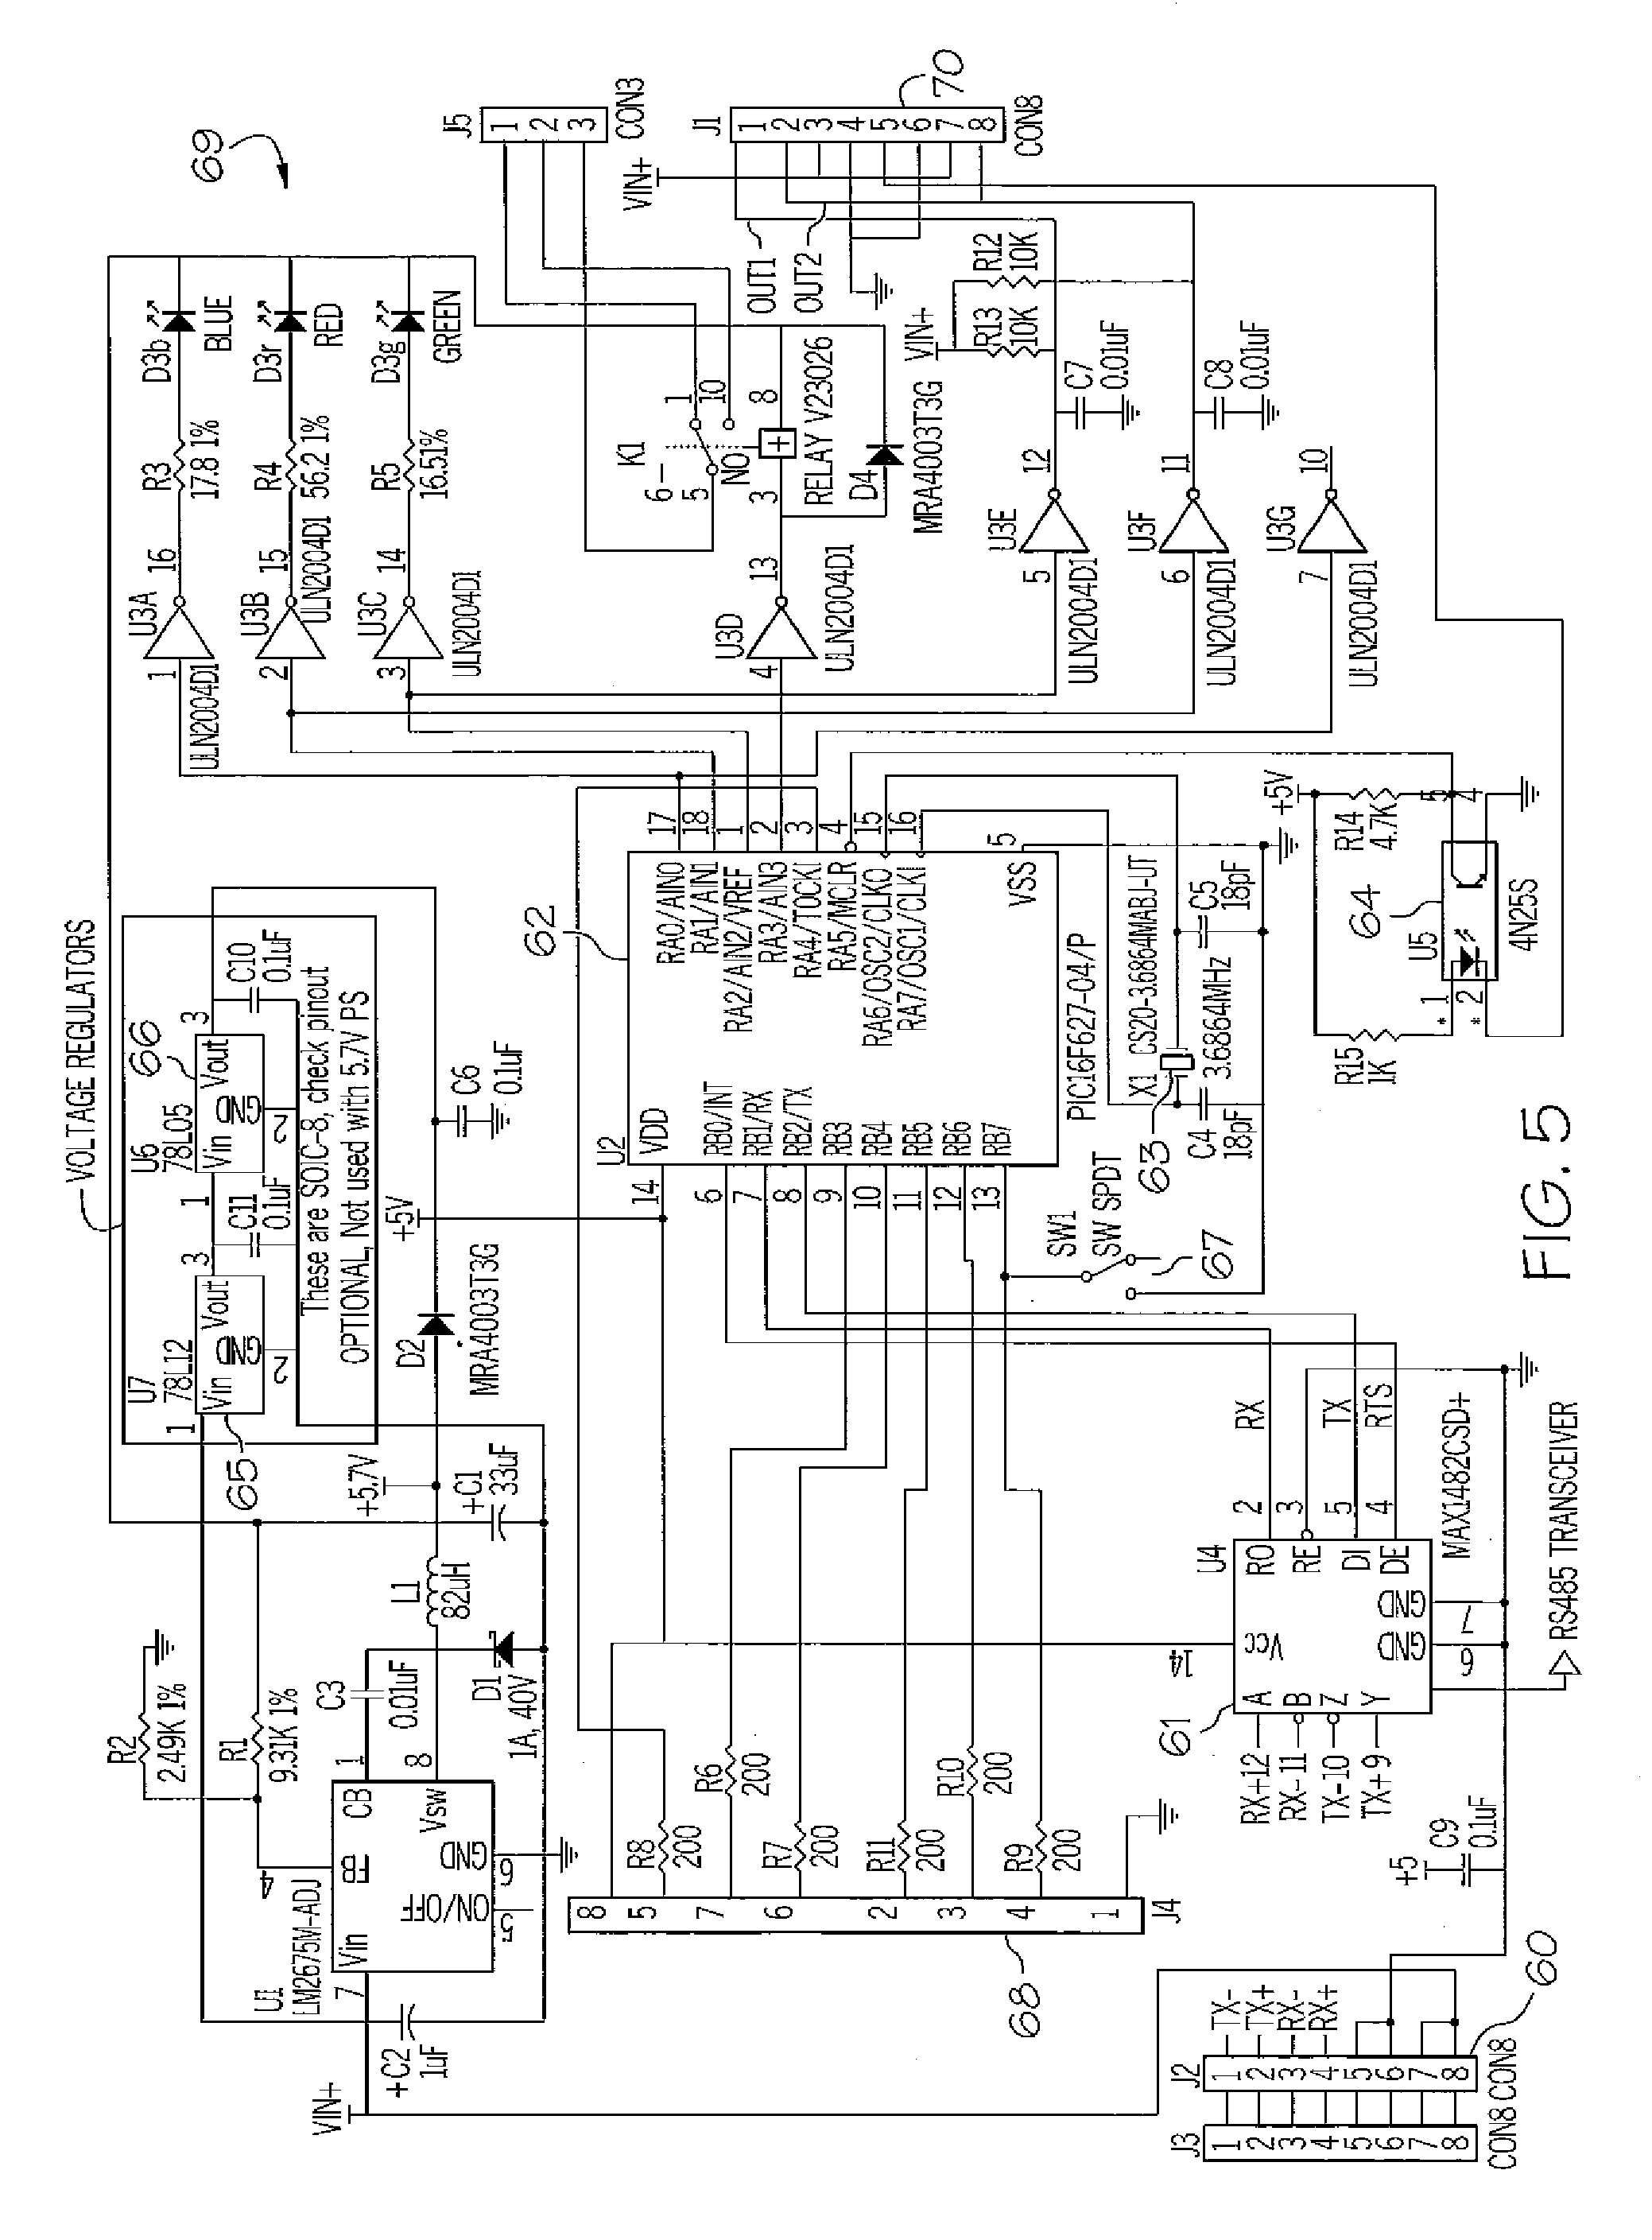 rauland nurse call wiring diagram